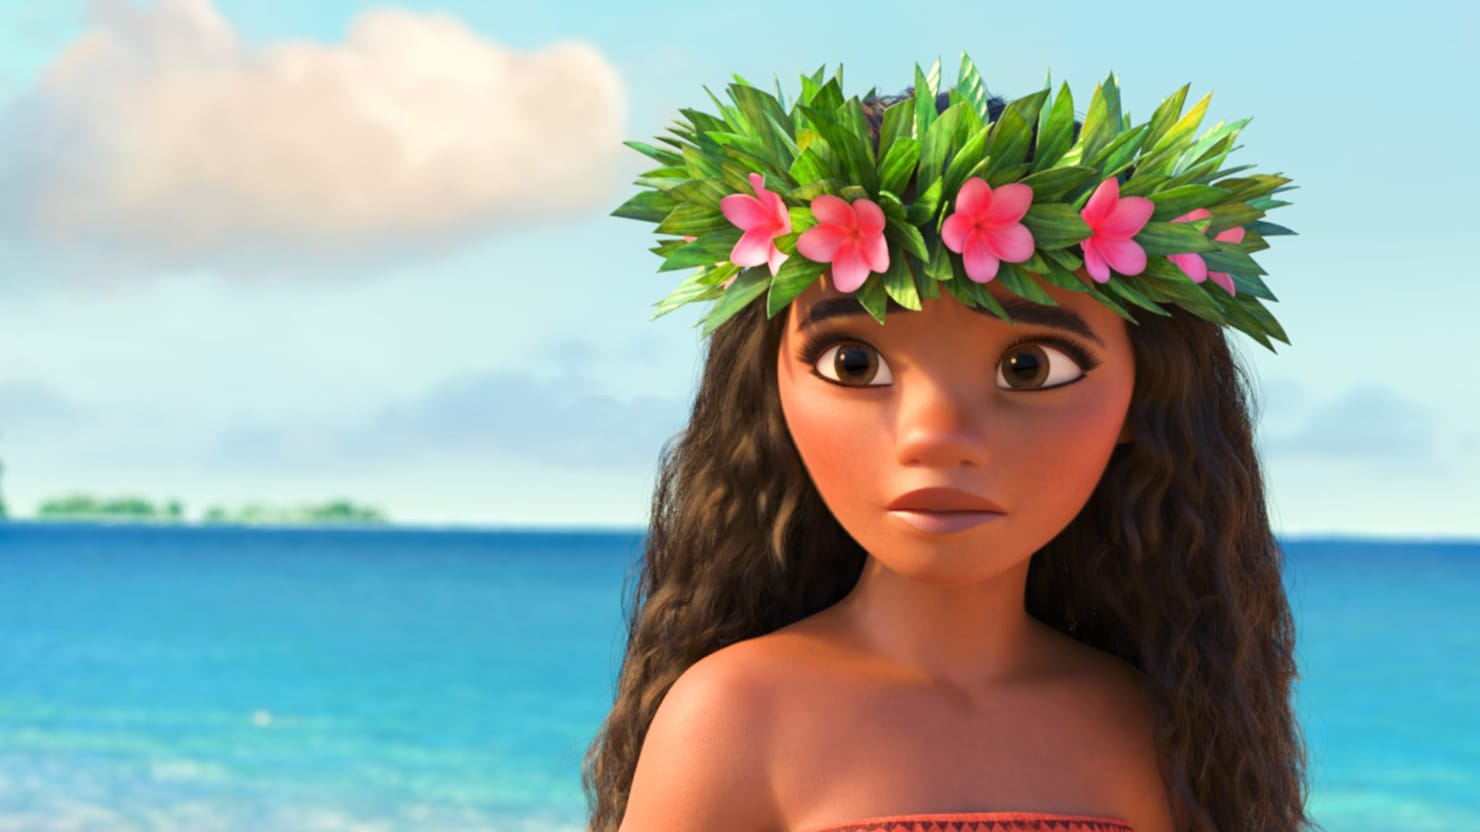 The Revolutionary 'Moana': Disney's Most Unapologetically Feminist Princess Yet